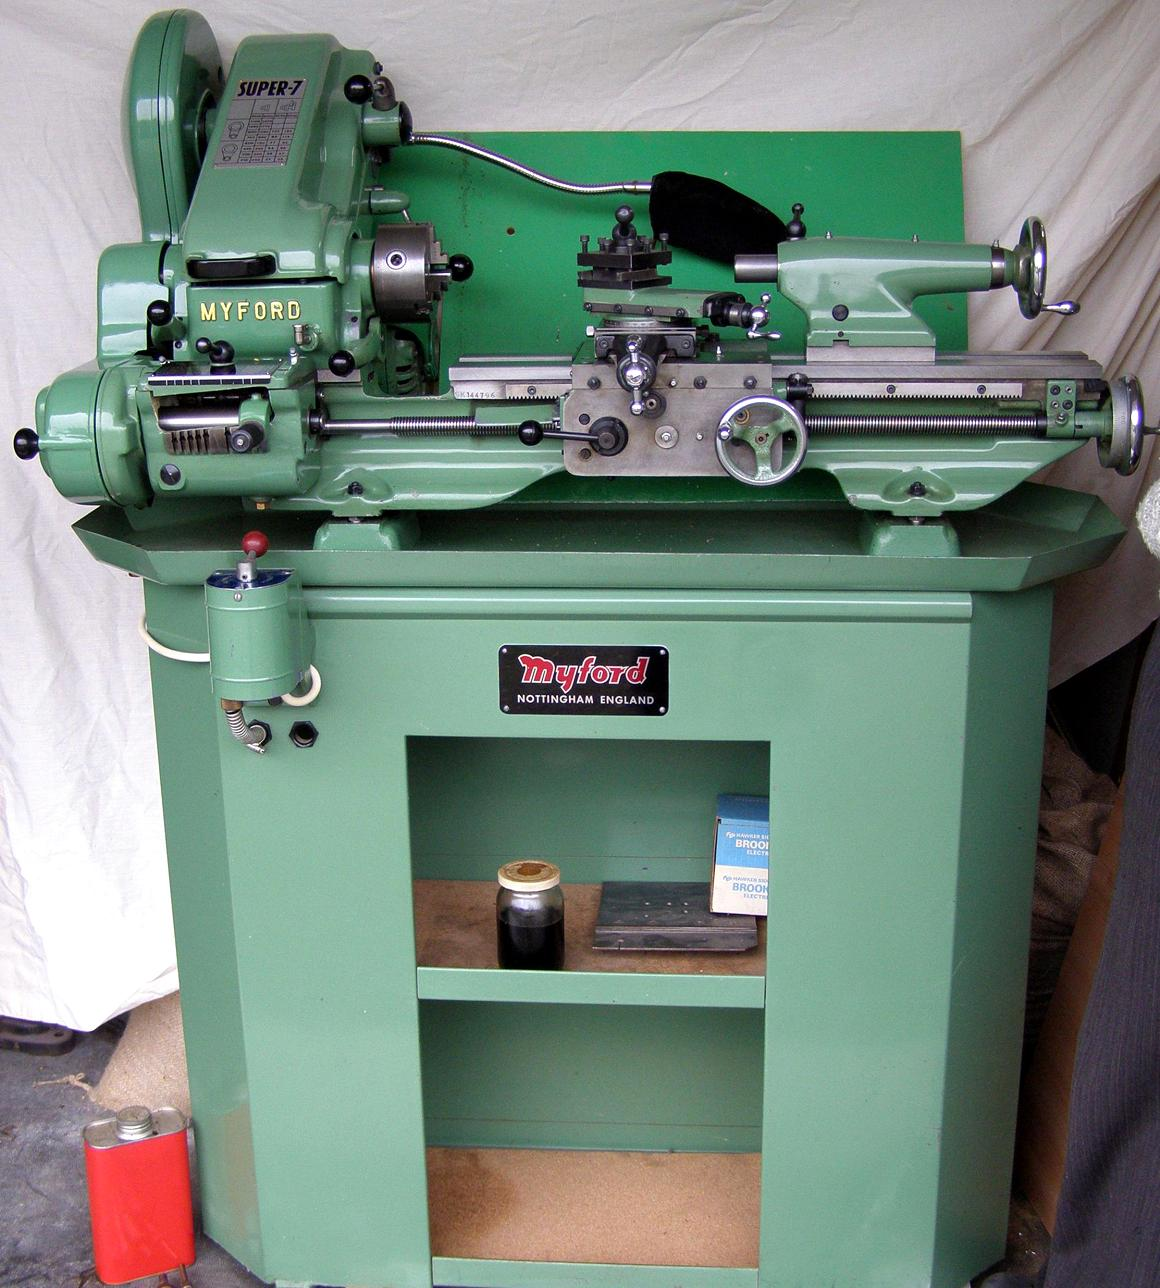 Myford Super 7 Lathe Weight